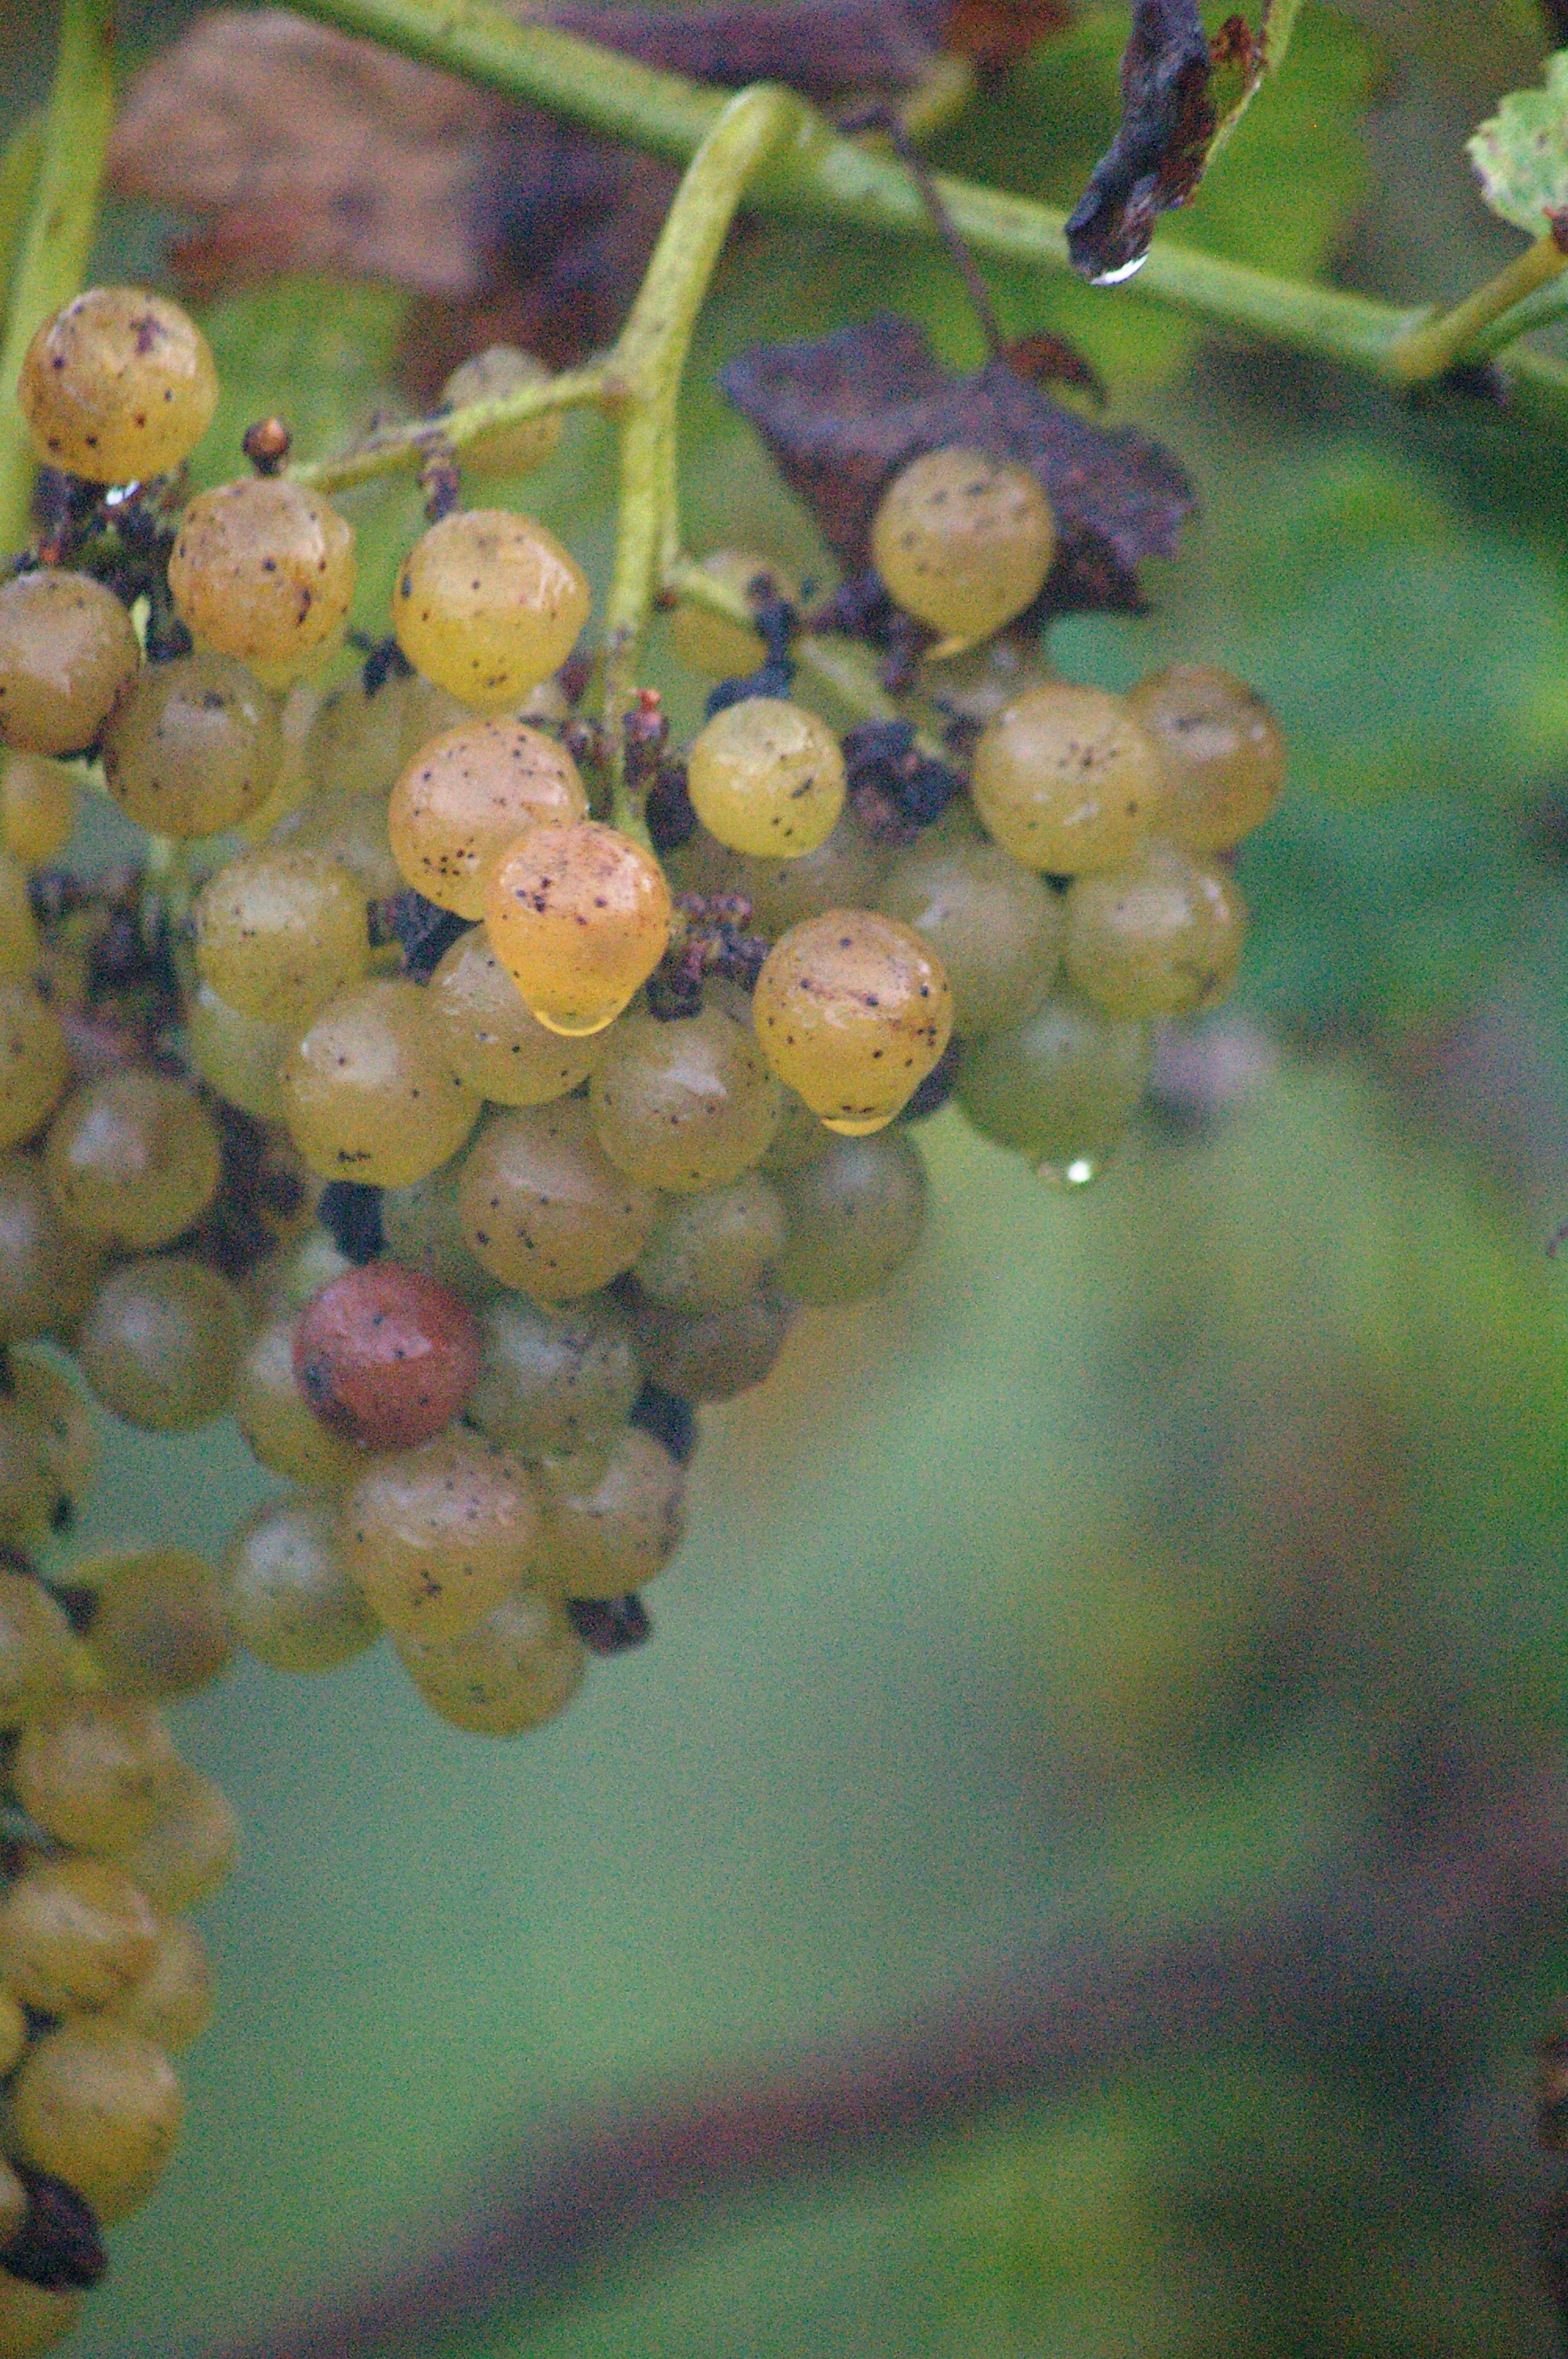 dew on grapes